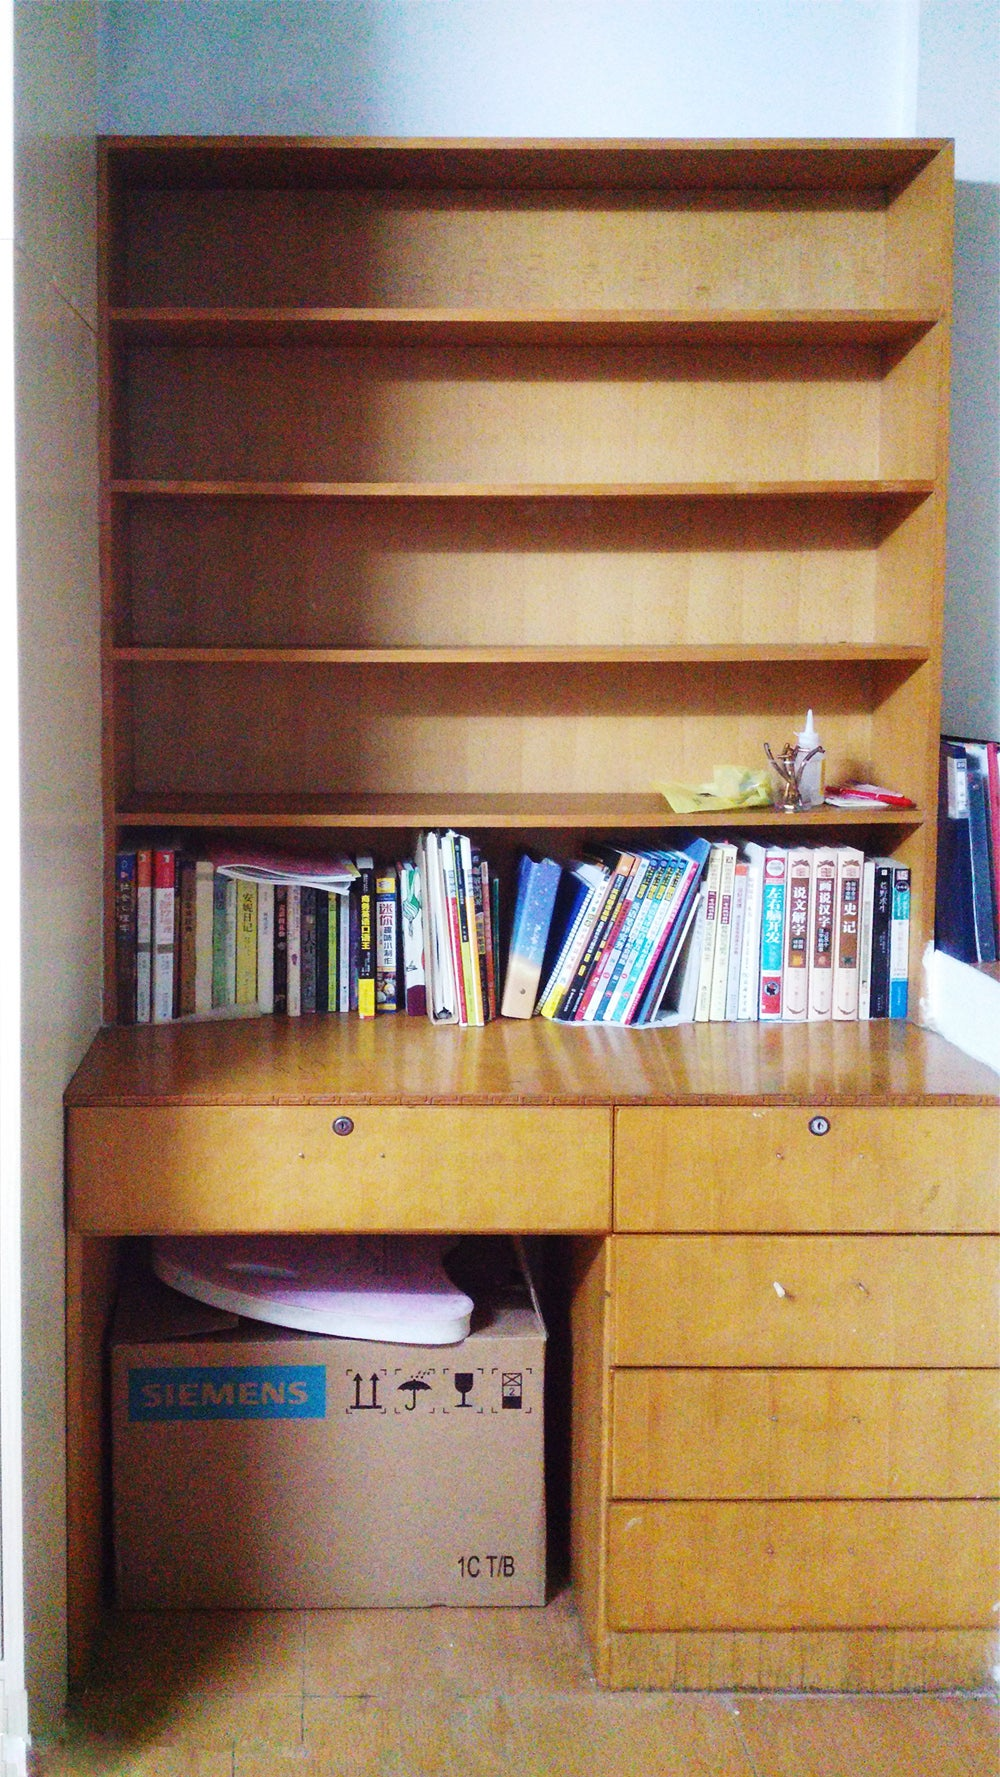 Two Essential Questions About Organization